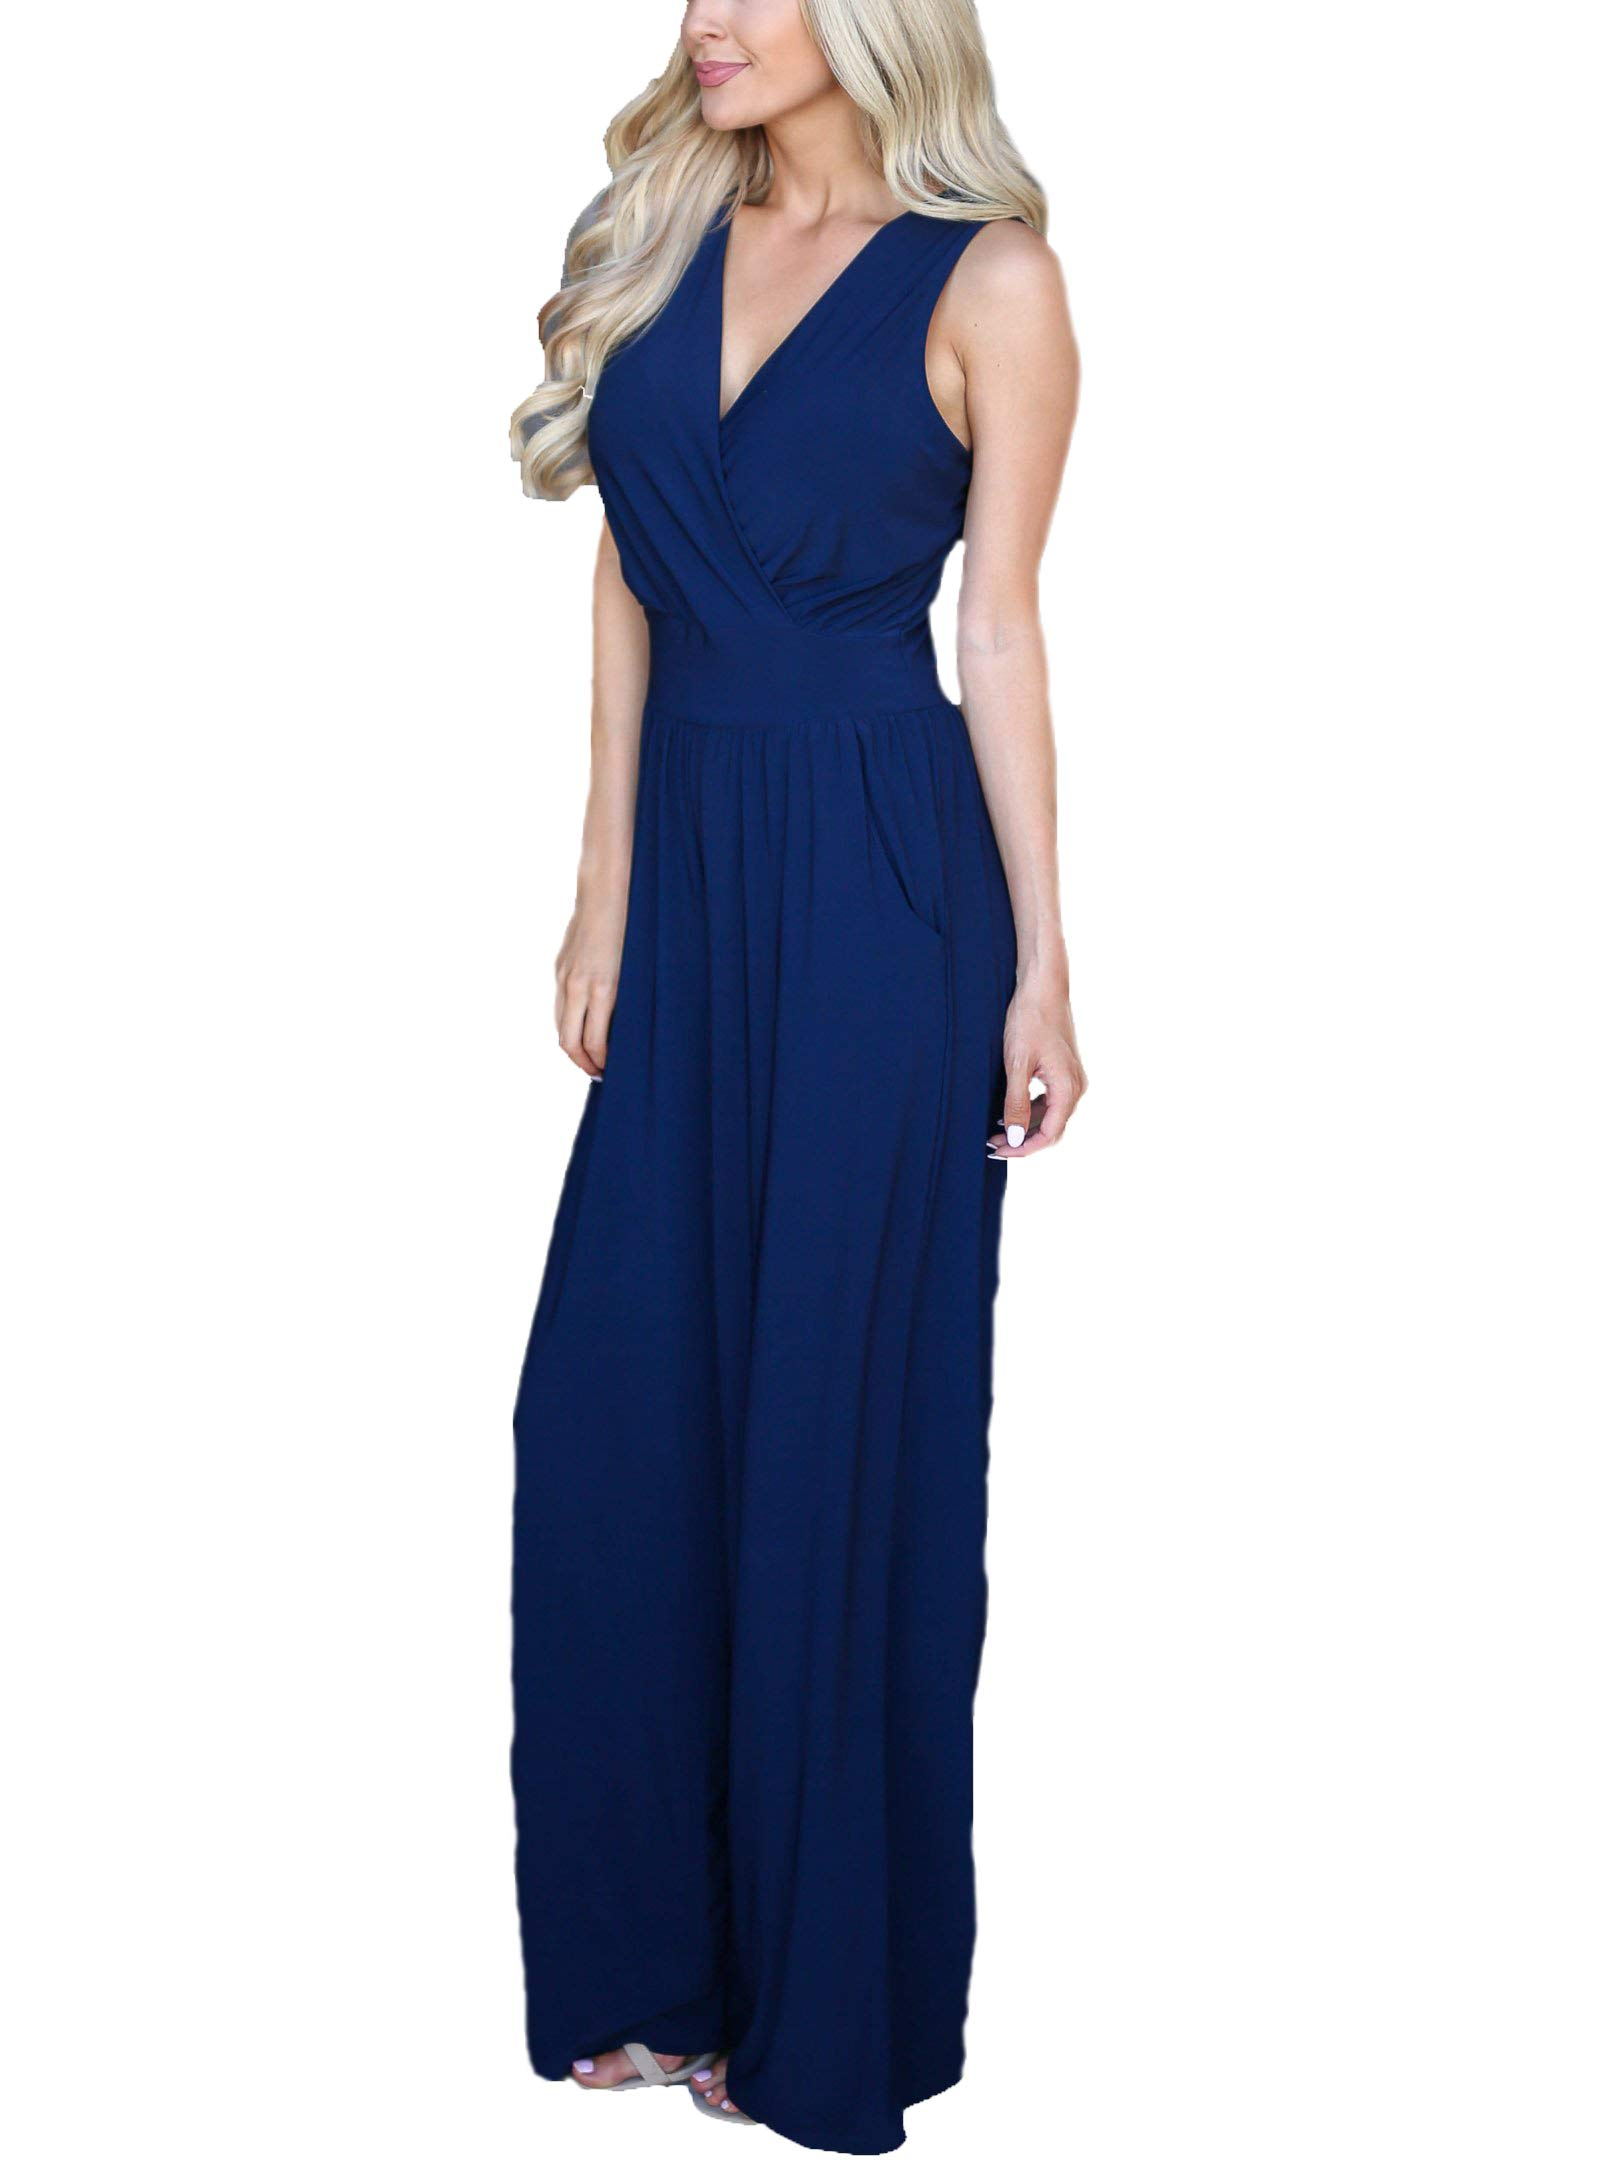 US Womens Sexy Romper Sleveless V-Neck Tummy Control Leg Wide Loose Pants Jumpsuit Solid Color (Blue, S)